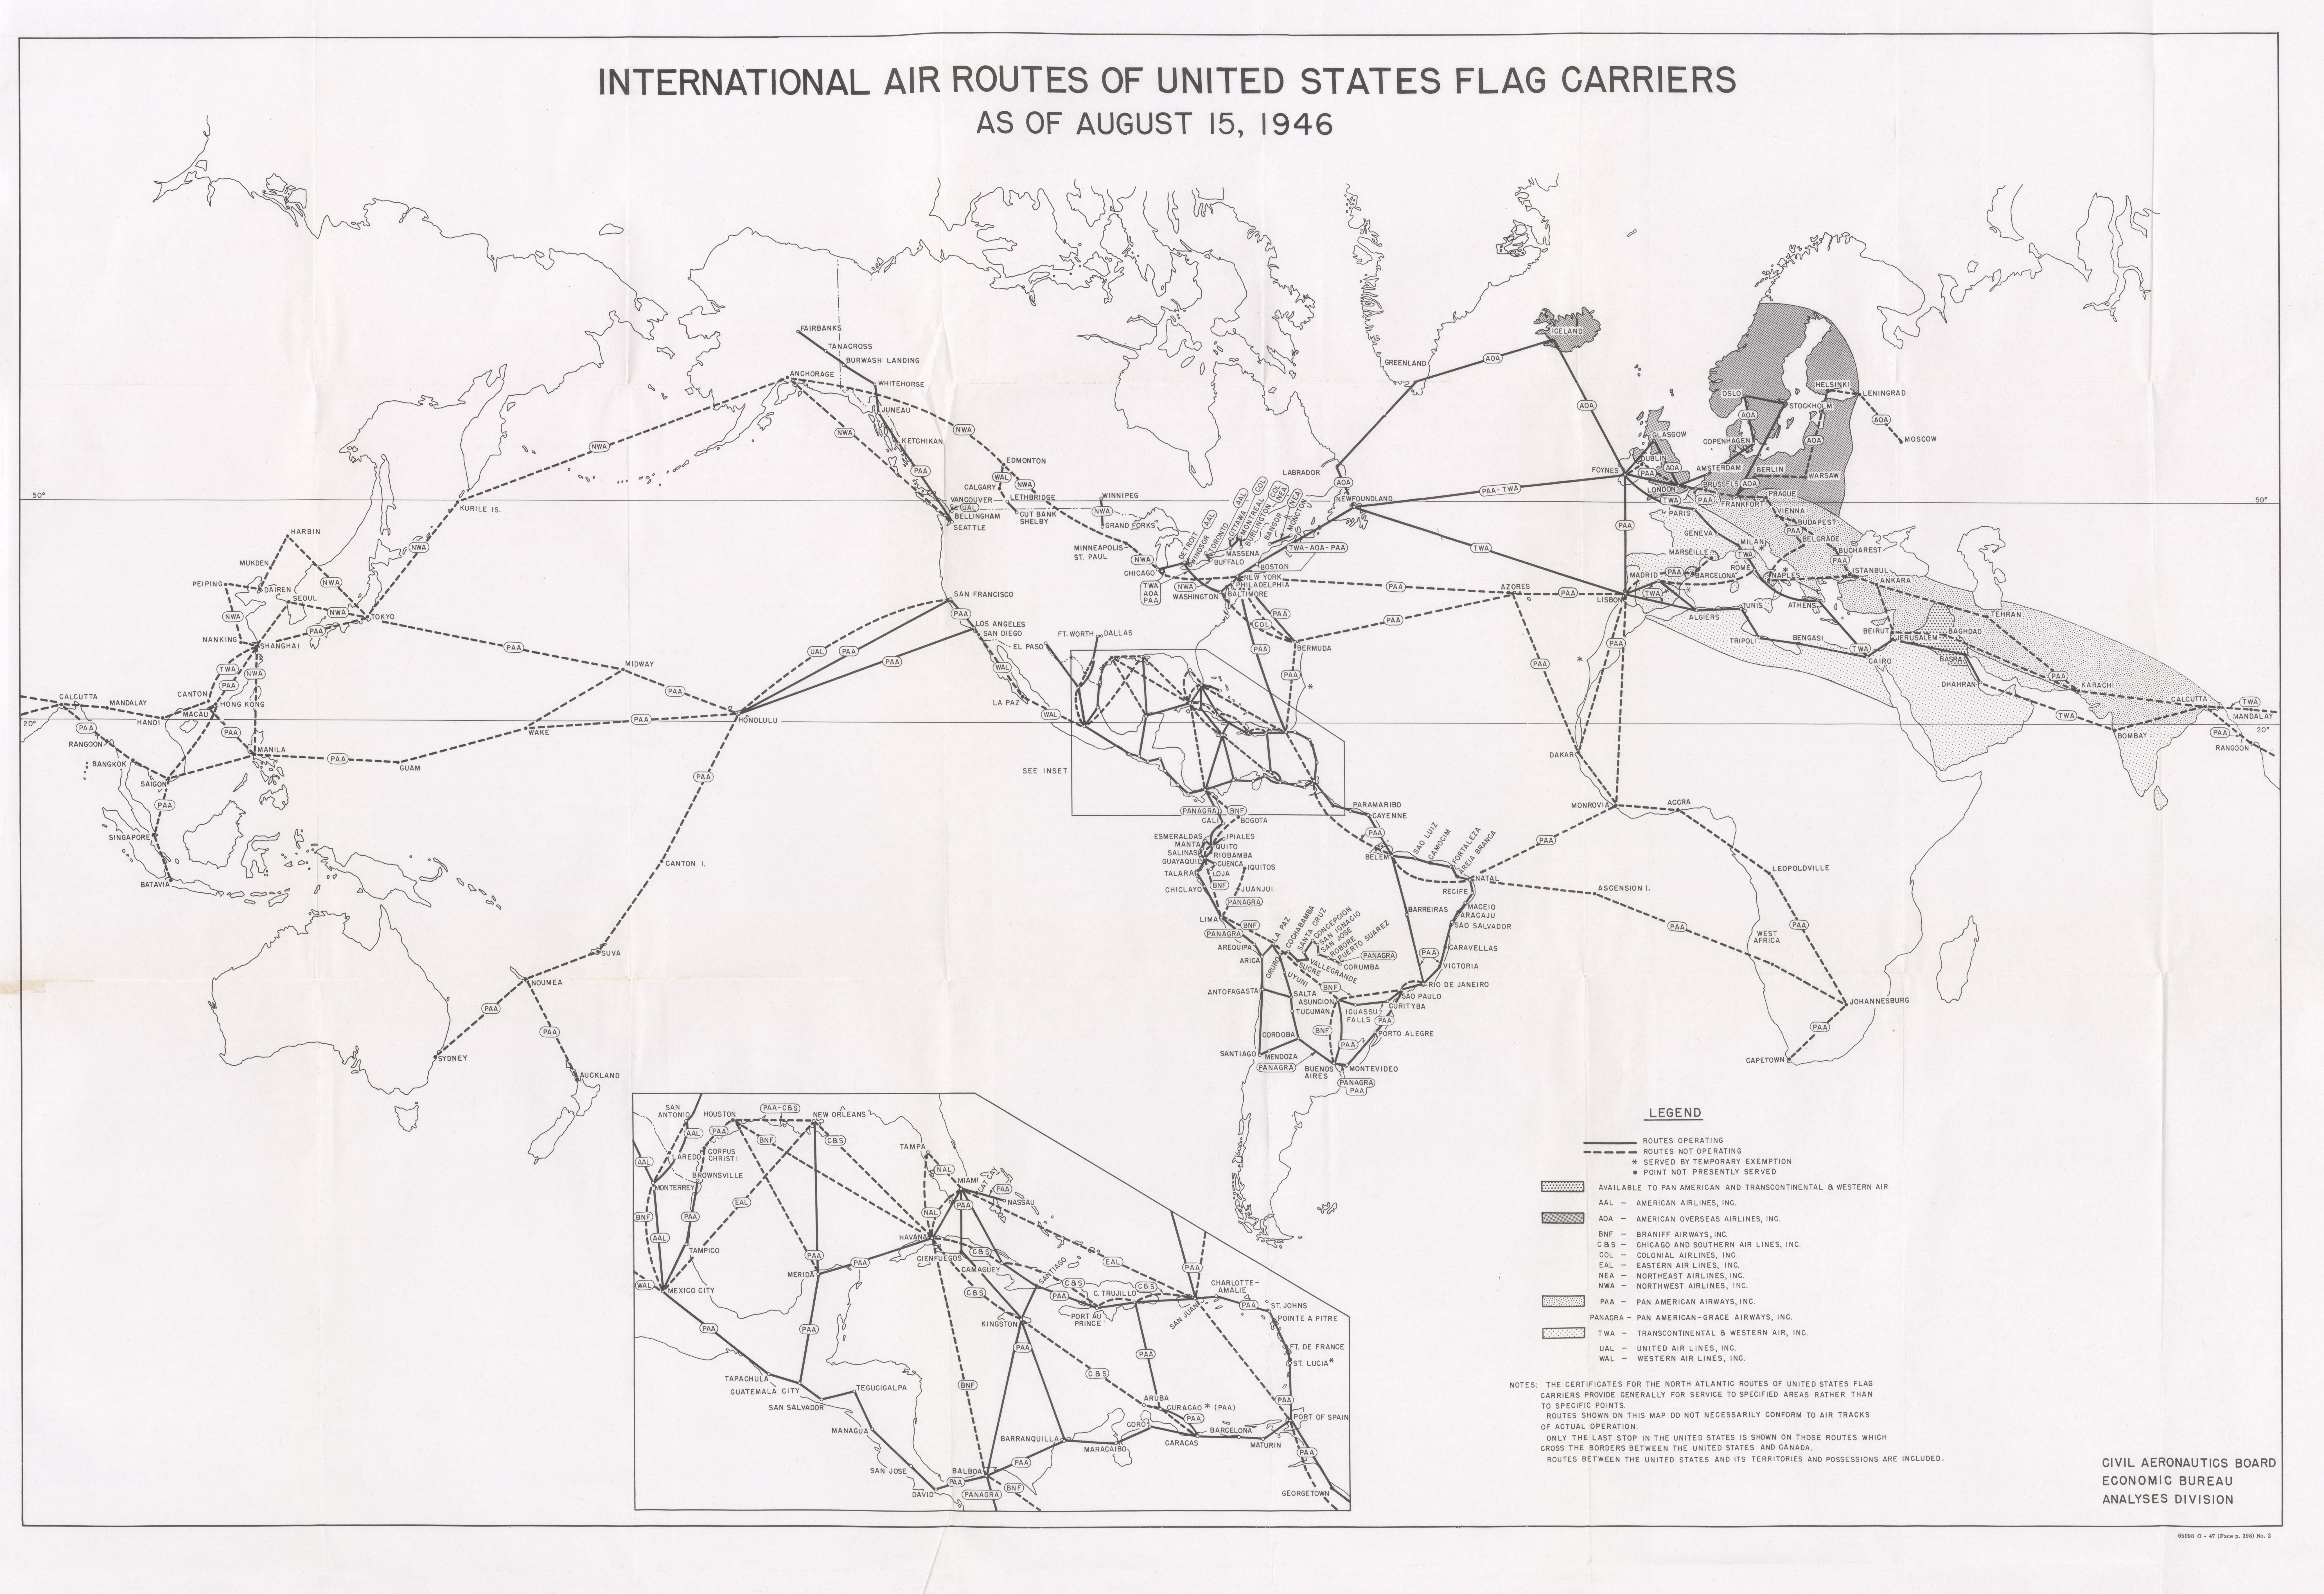 Maps From Congressional Hearings PerryCastañeda Map Collection - Map of us airline routes